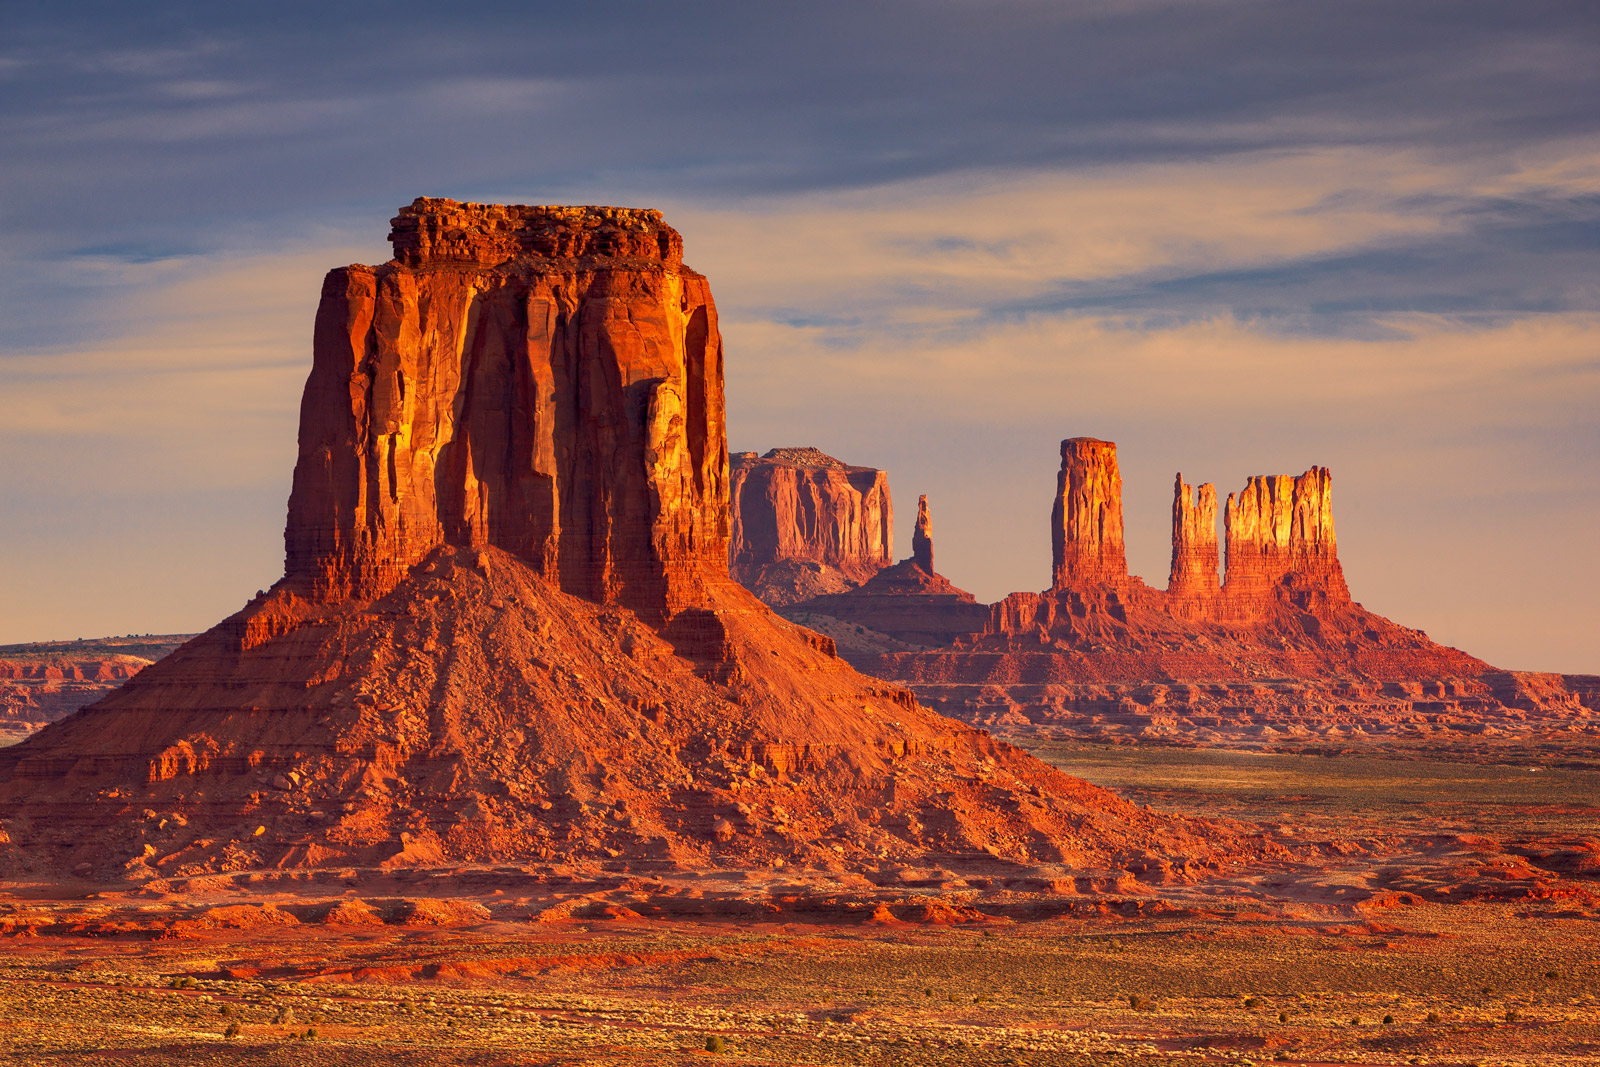 Utah, Monument Valley, Artist Point, limited edition, photograph, fine art, landscape, red rock, photo